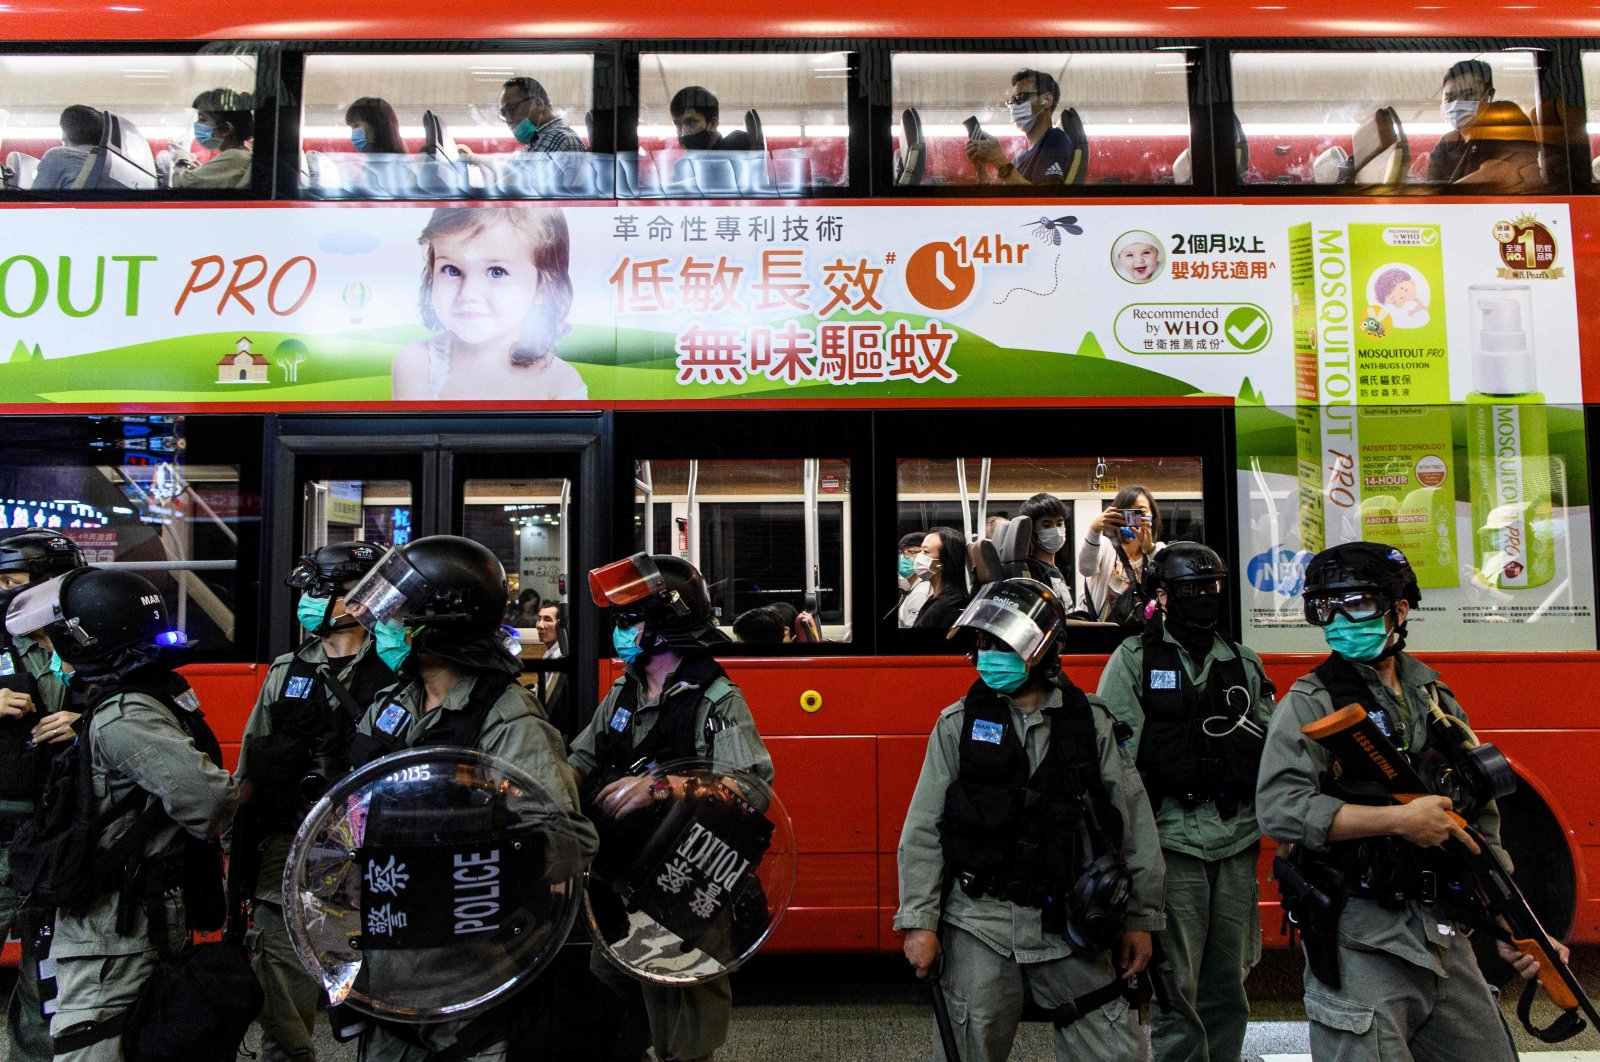 Commuters are driven past a group of riot police on a street after an anti-government protest took place in a shopping mall, Hong Kong, May 13, 2020. (AFP Photo)